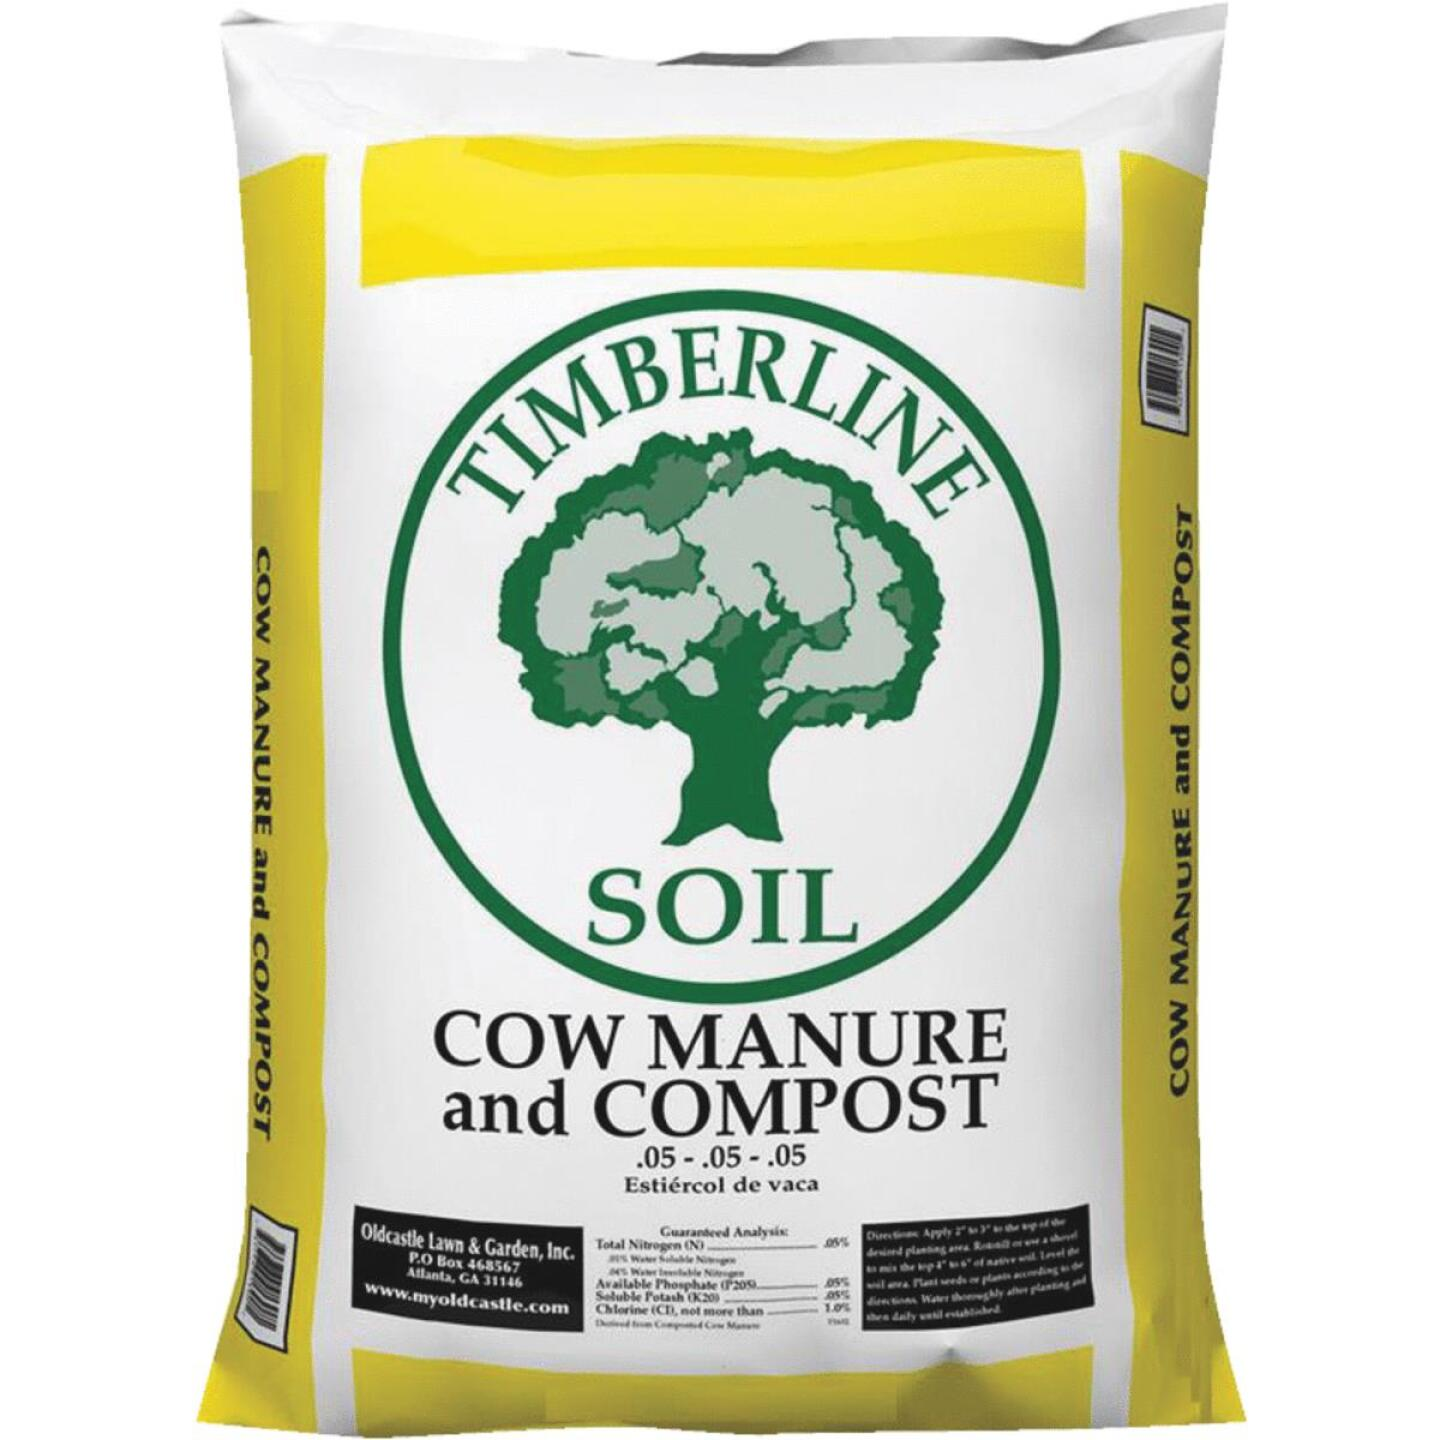 Timberline 40 Lb. Compost and Cow Manure Image 1